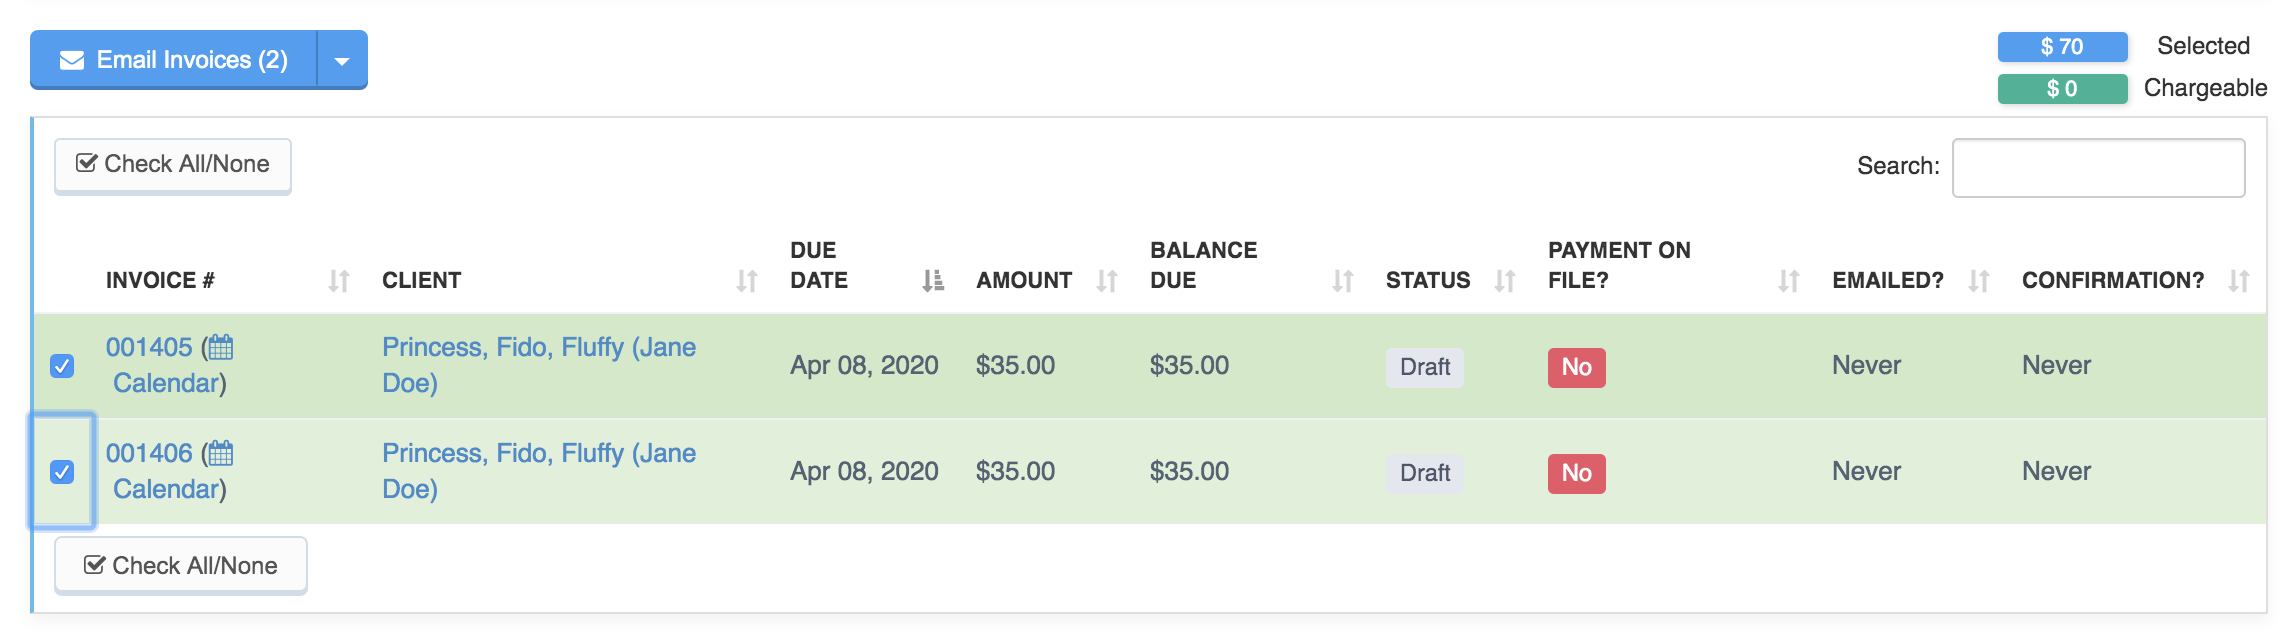 Invoice list on Bulk Invoicing tab with two invoices selected to perform bulk actions